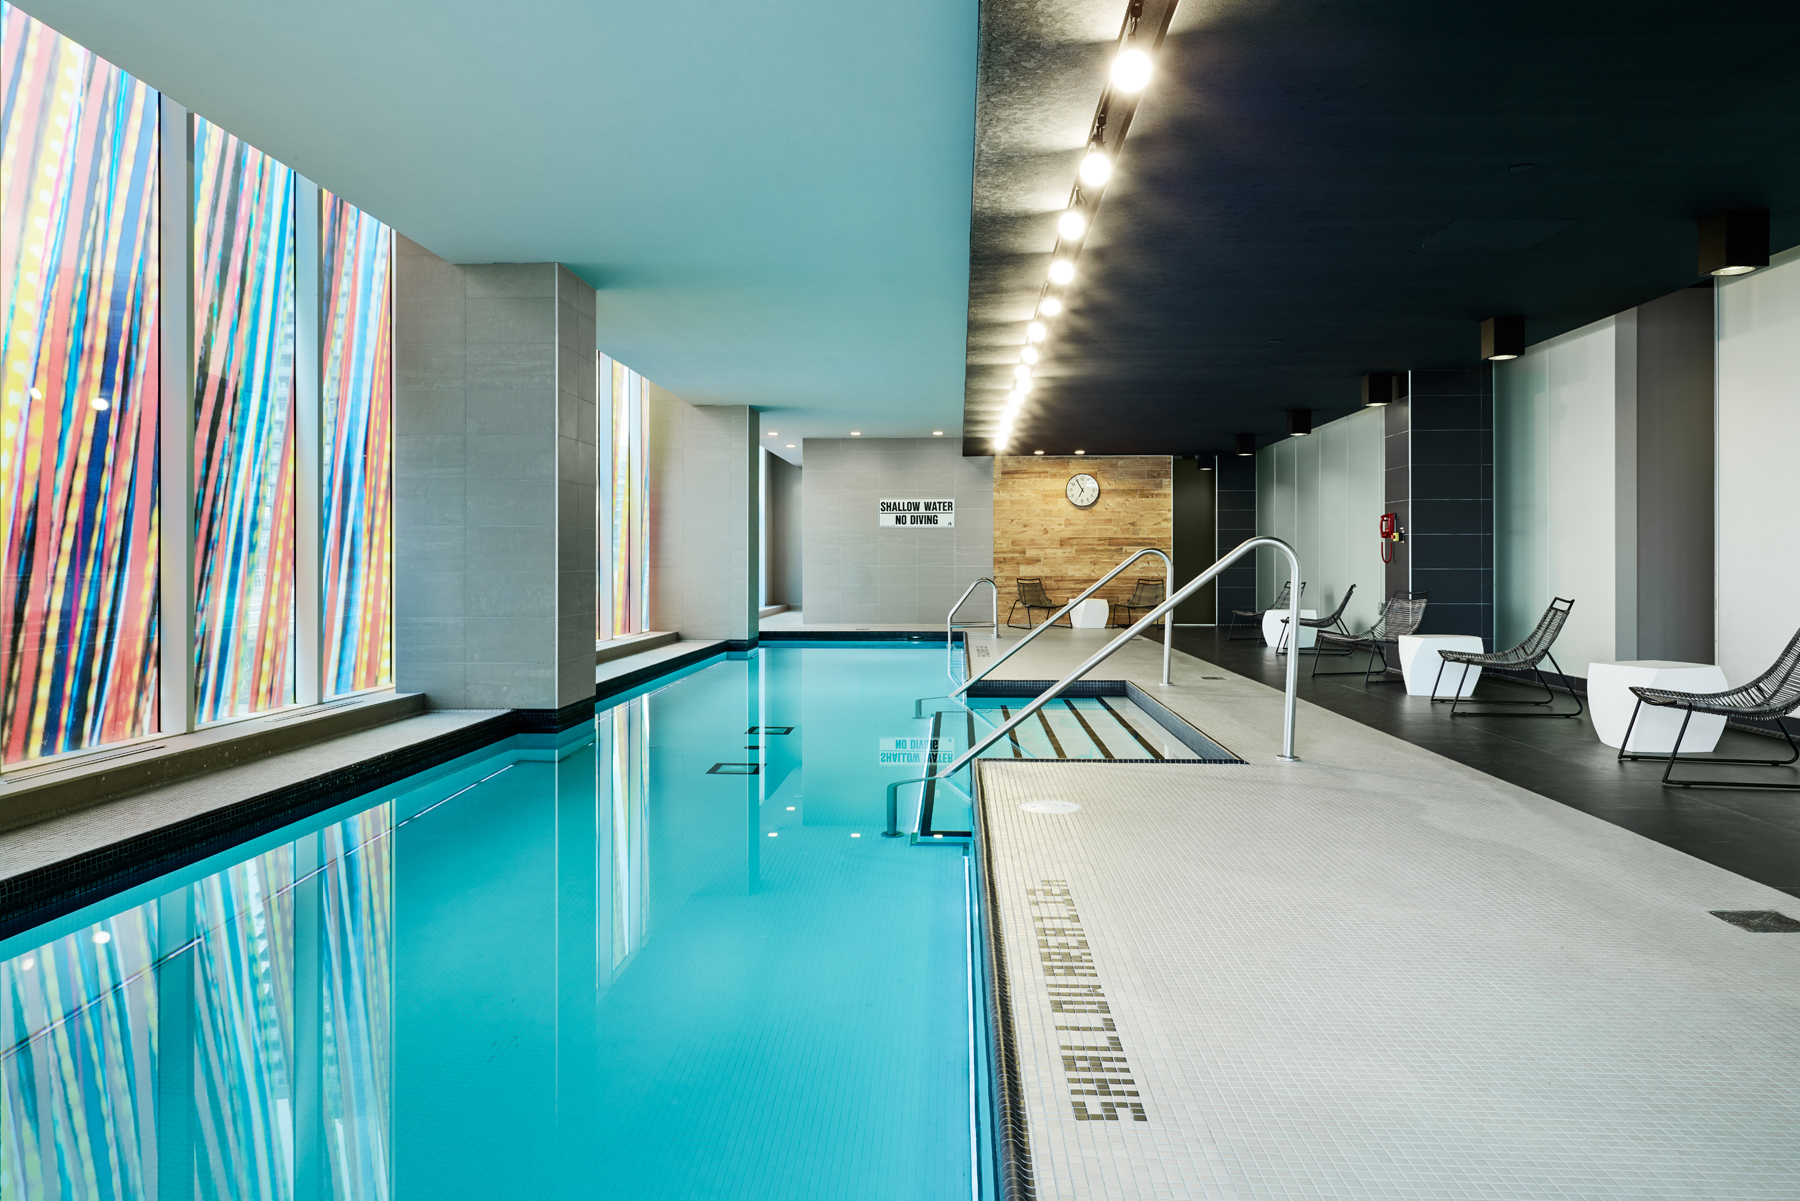 Concord Quartz pool with bright blue water, white tile floor, black ceiling, and colourful glass wall